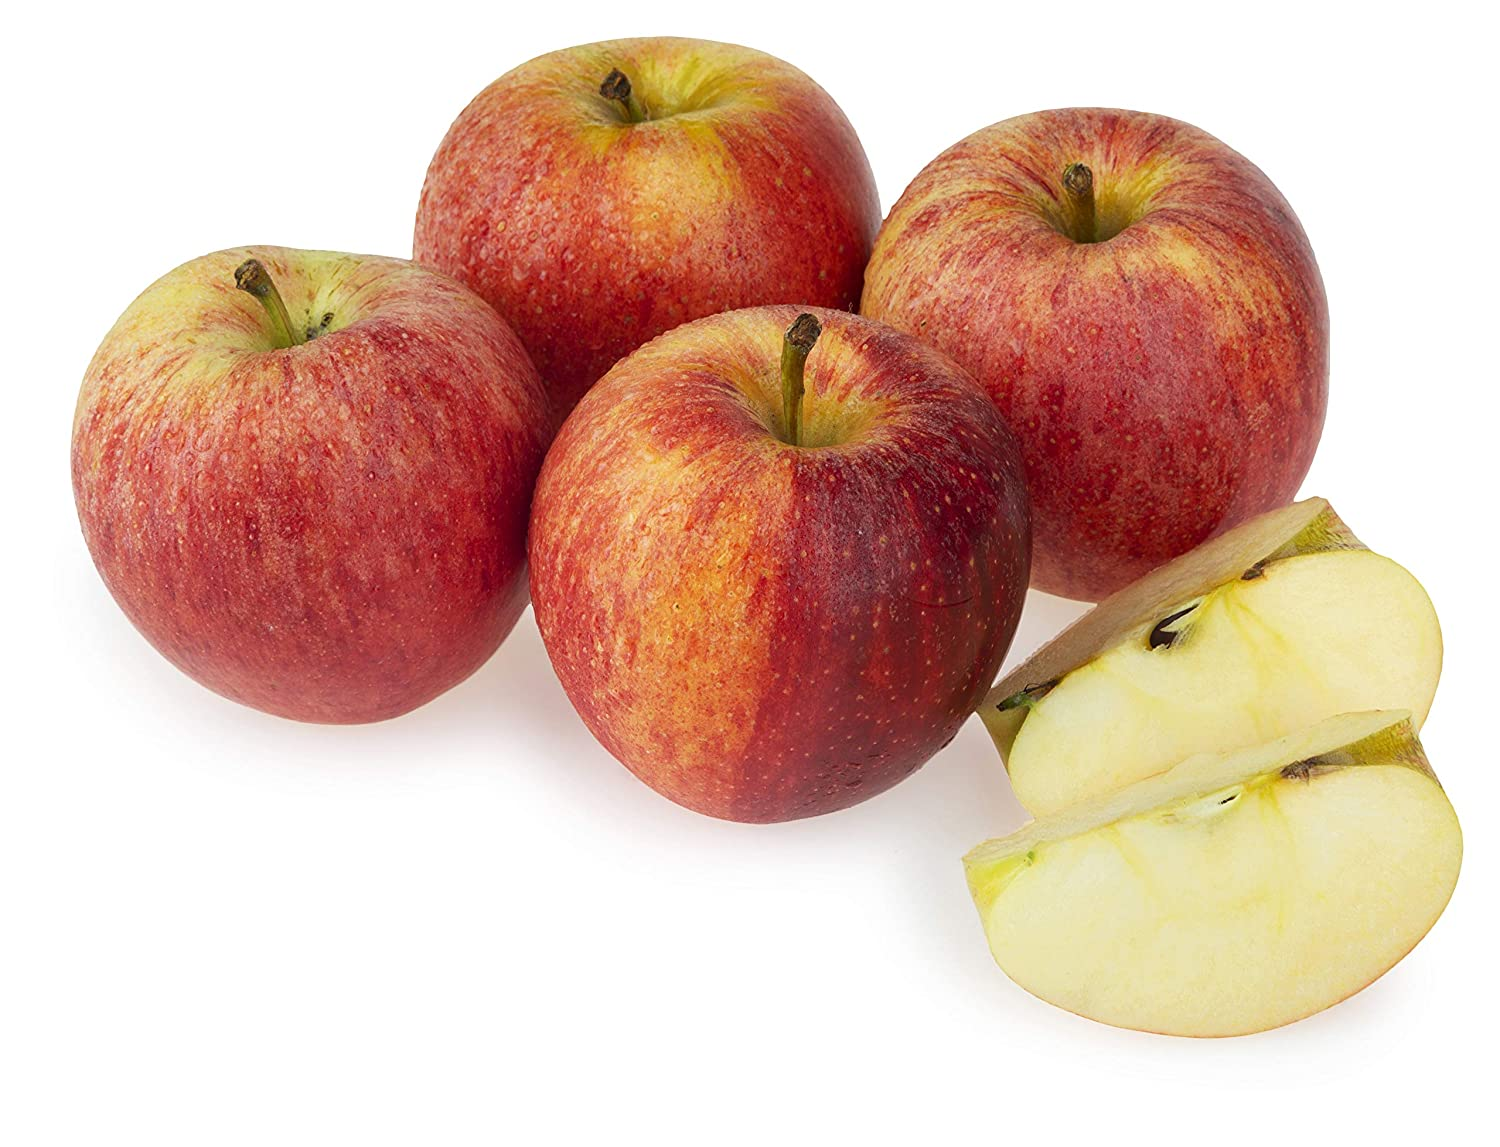 SIMLA APPLE